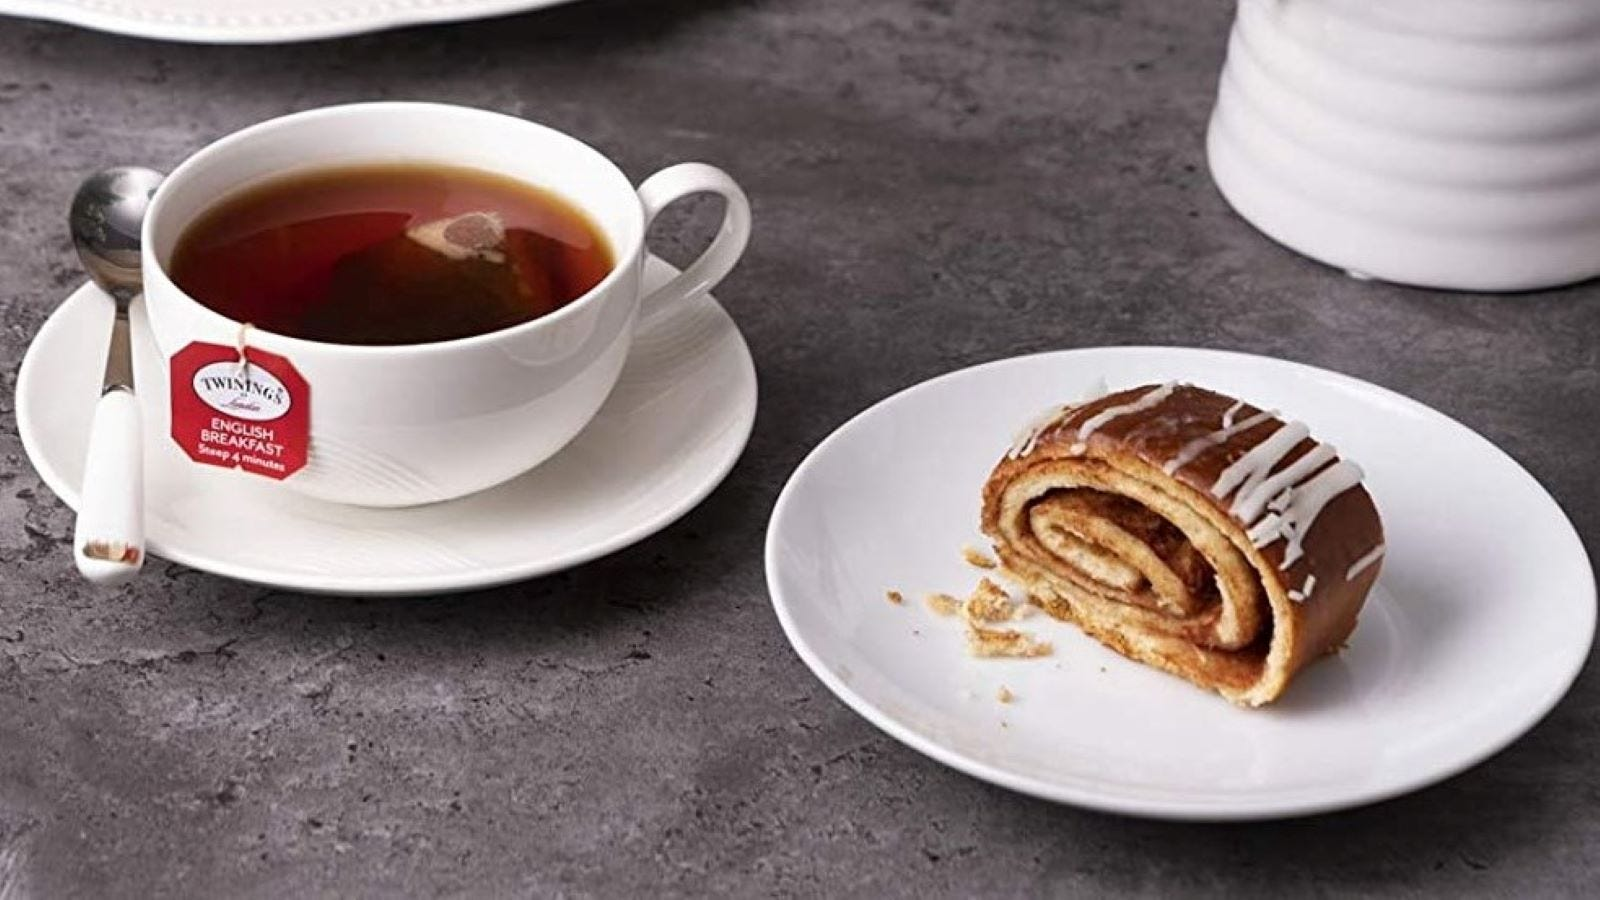 A cup of Twinings tea next to a cinnamon roll on a plate.